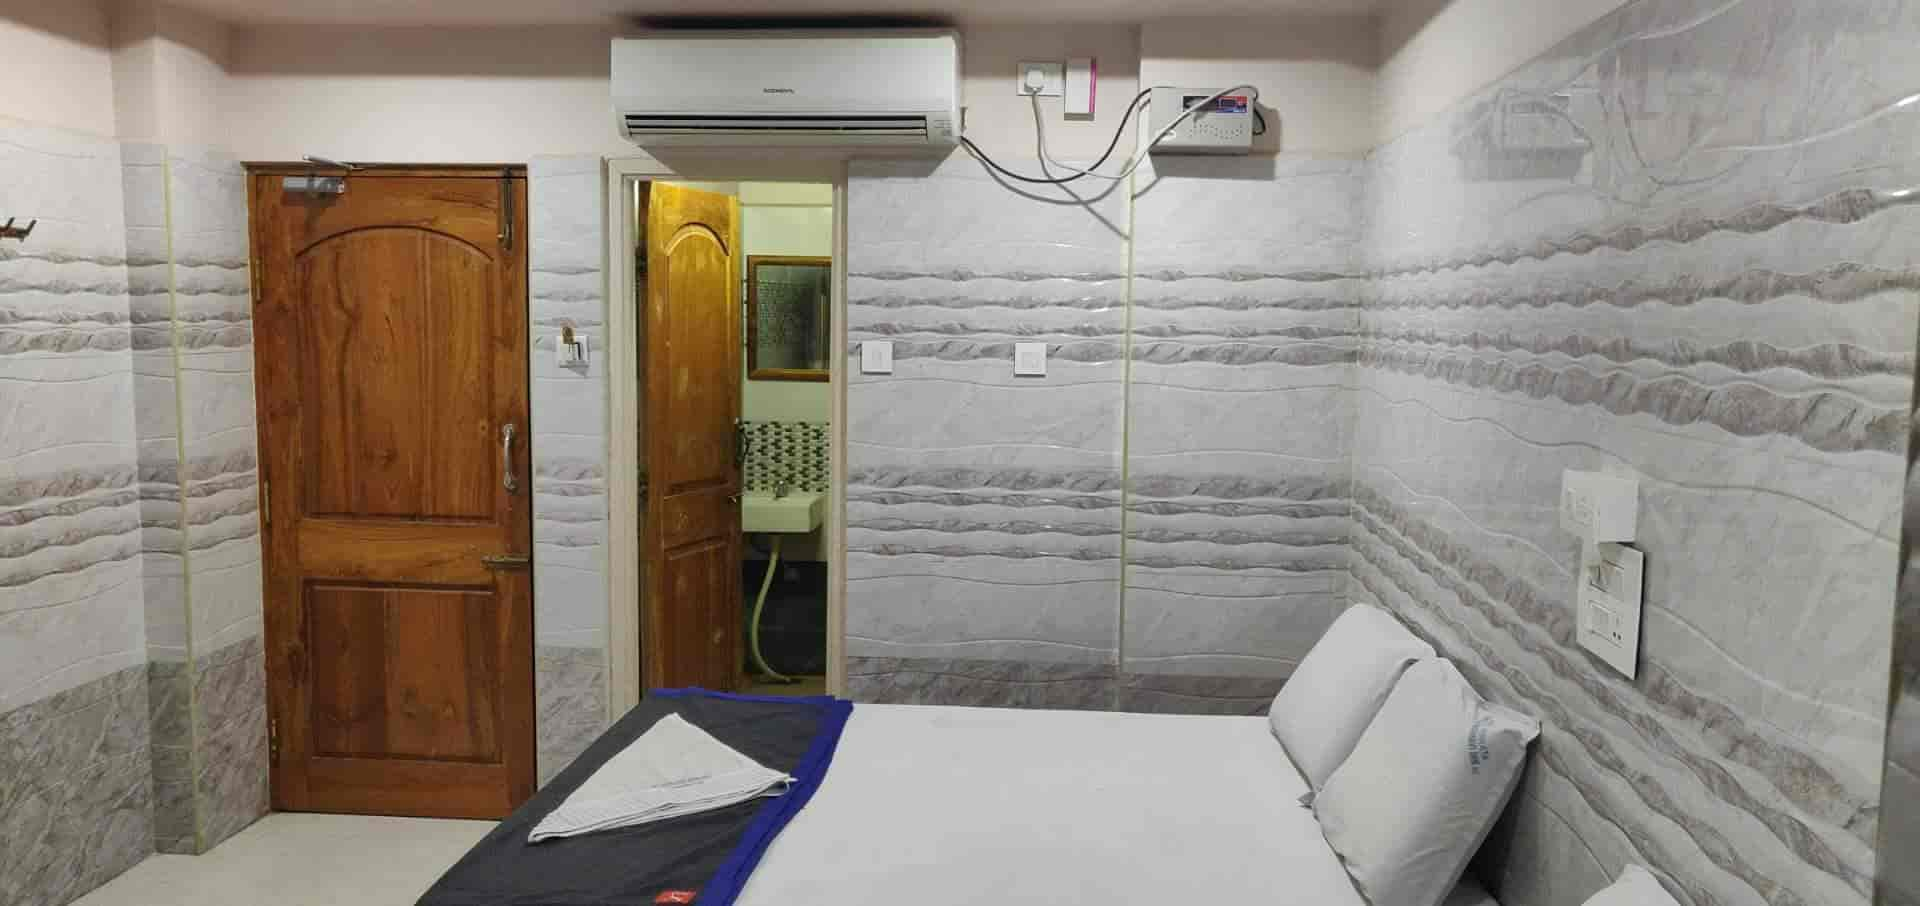 Top 100 Hotels (rs 501 To Rs 1000) in Tirupati - Best Hotels